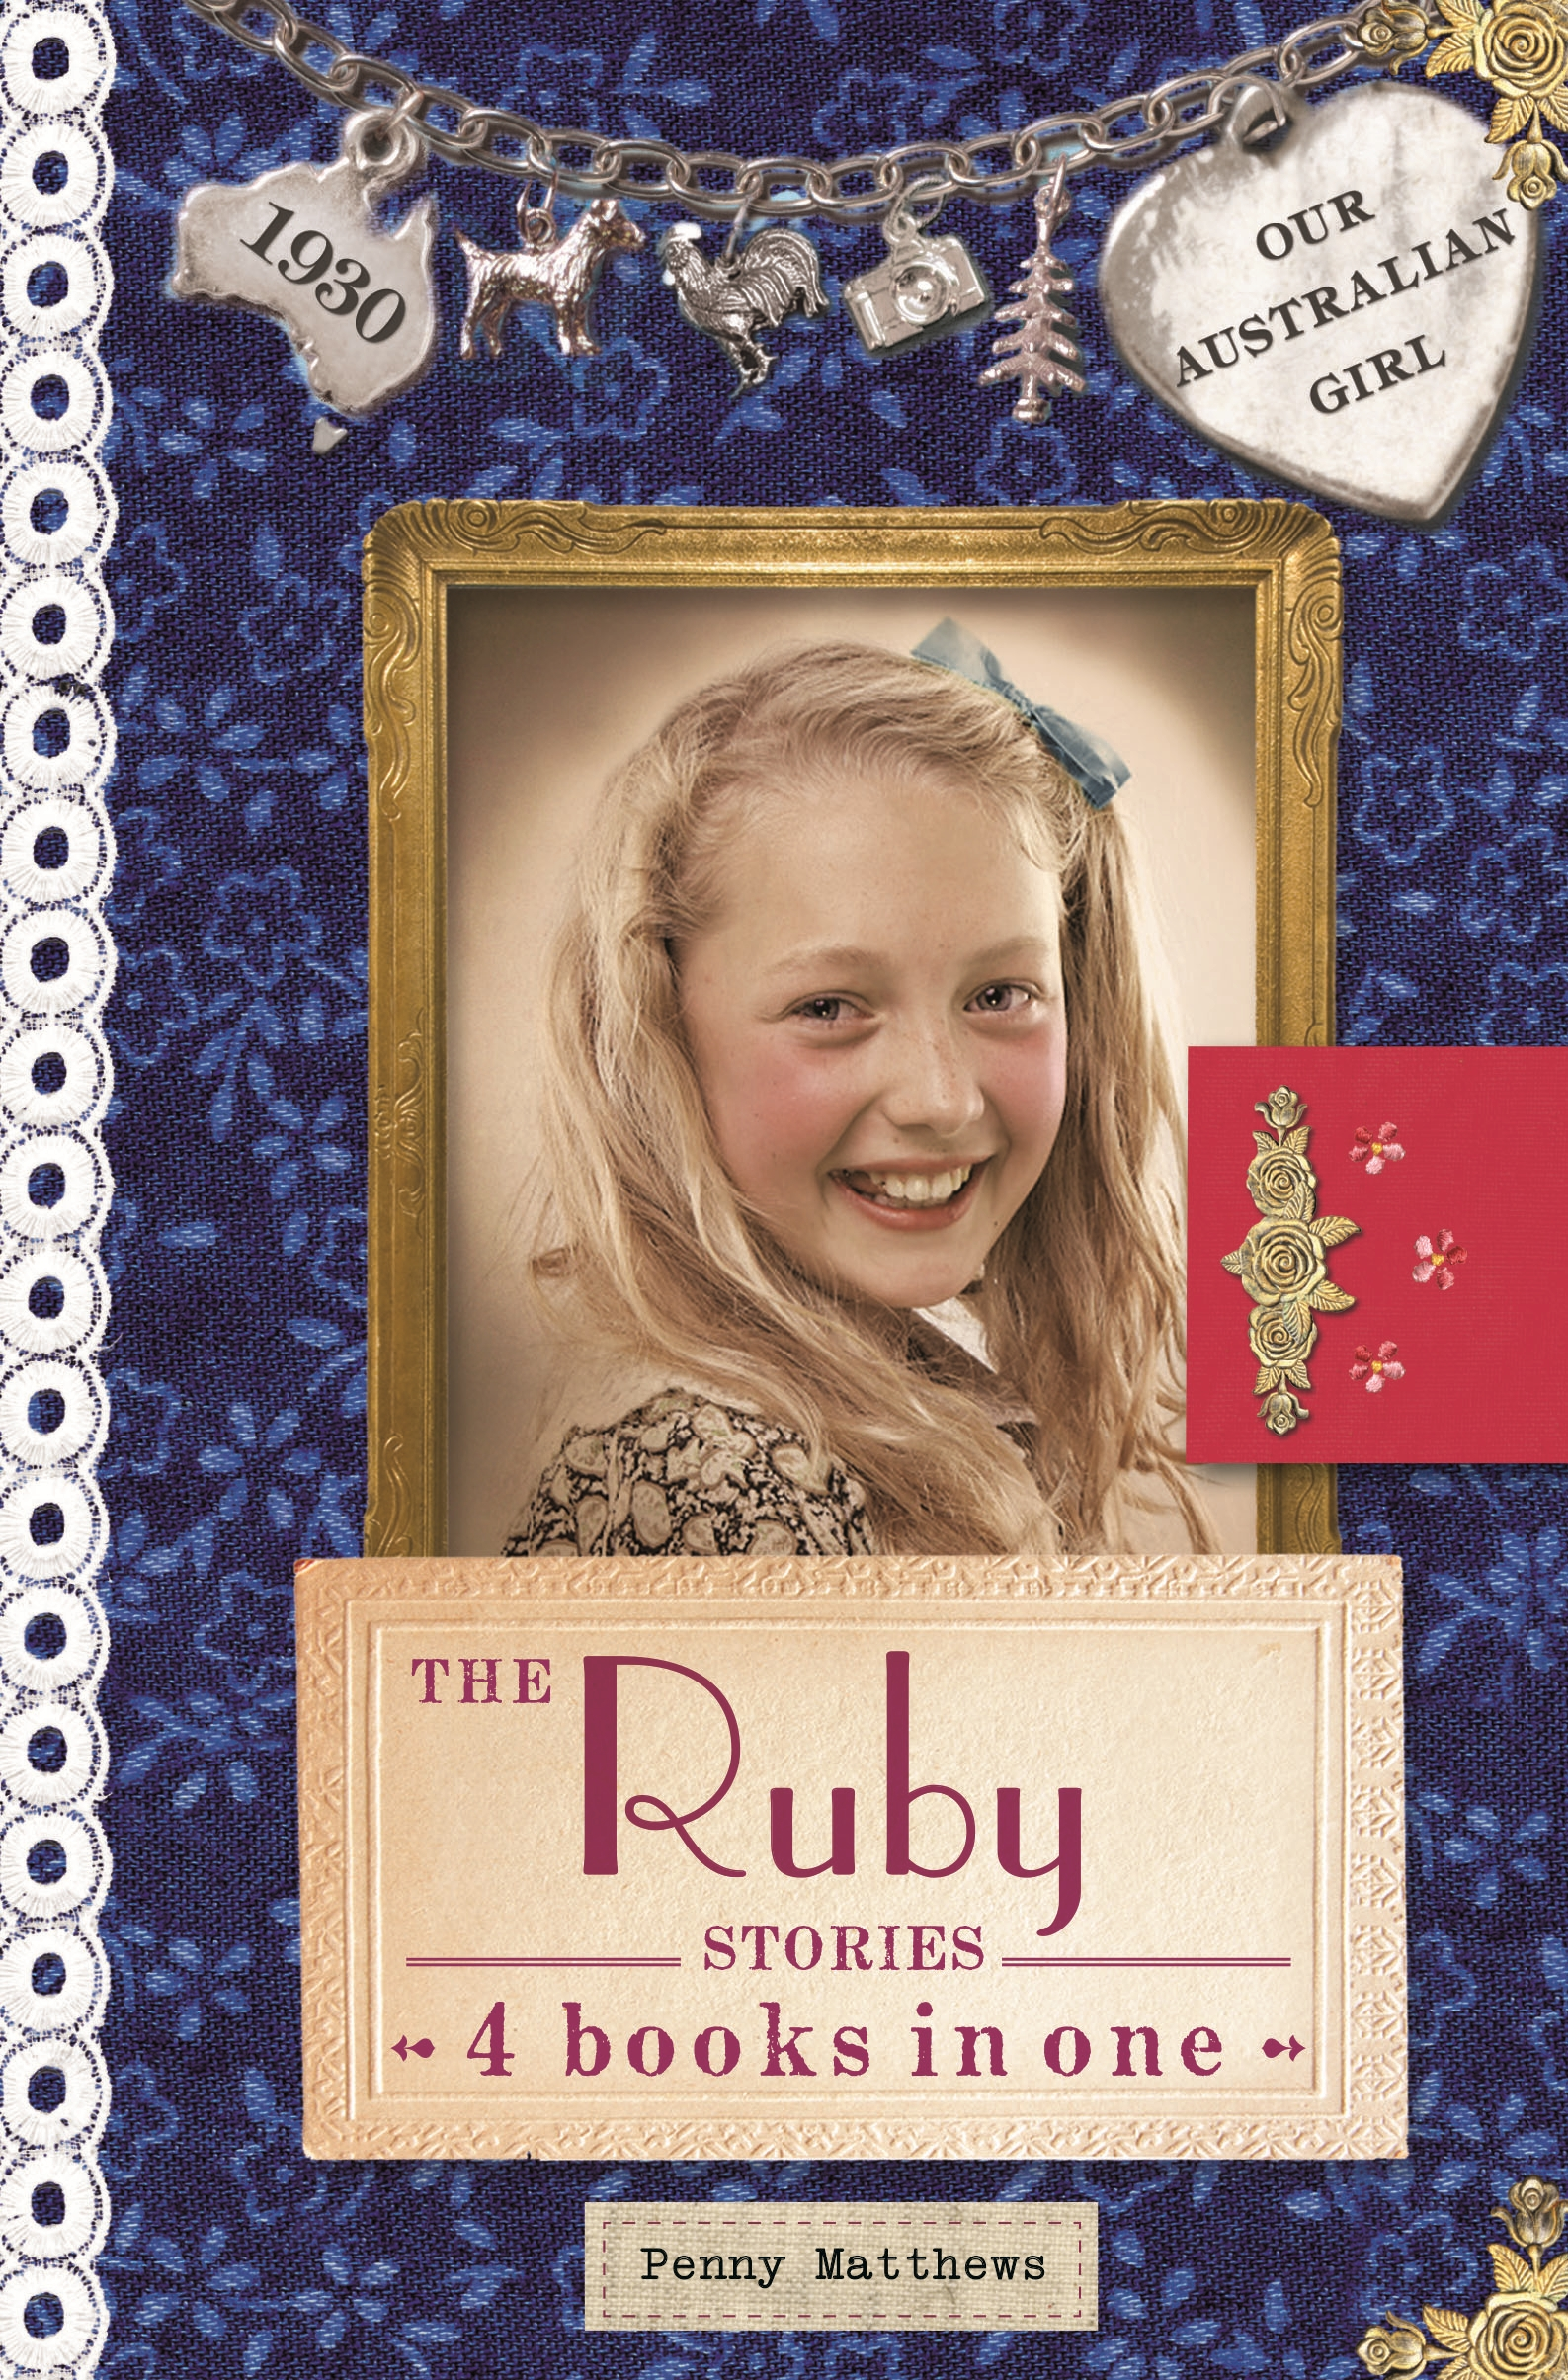 Our Australian GirlThe Ruby Stories